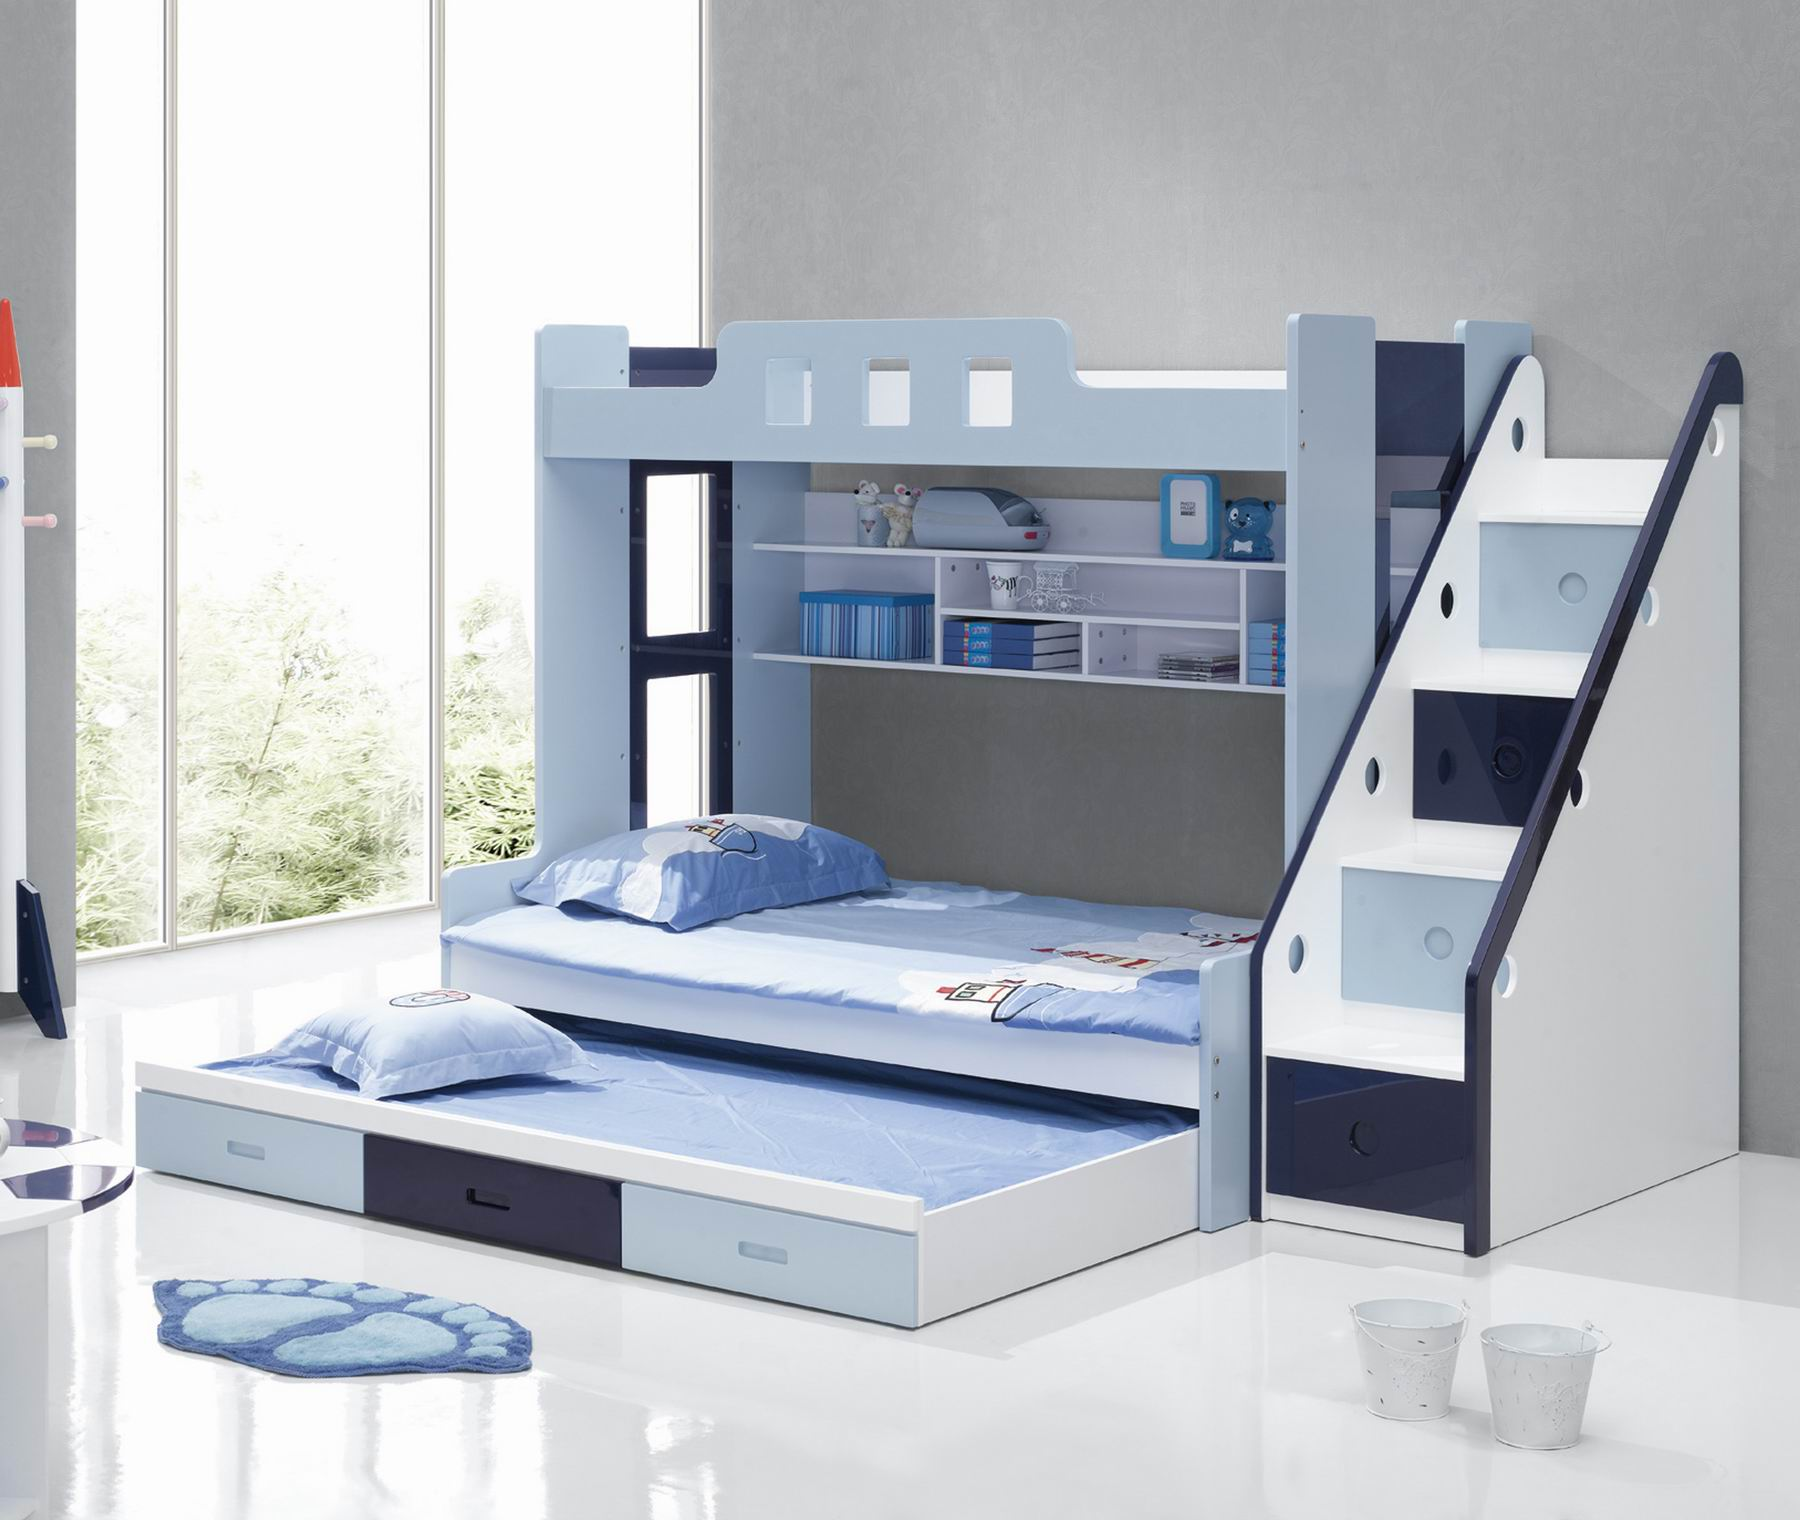 Bunk bed with desk and couch - Bunk Bed Couch